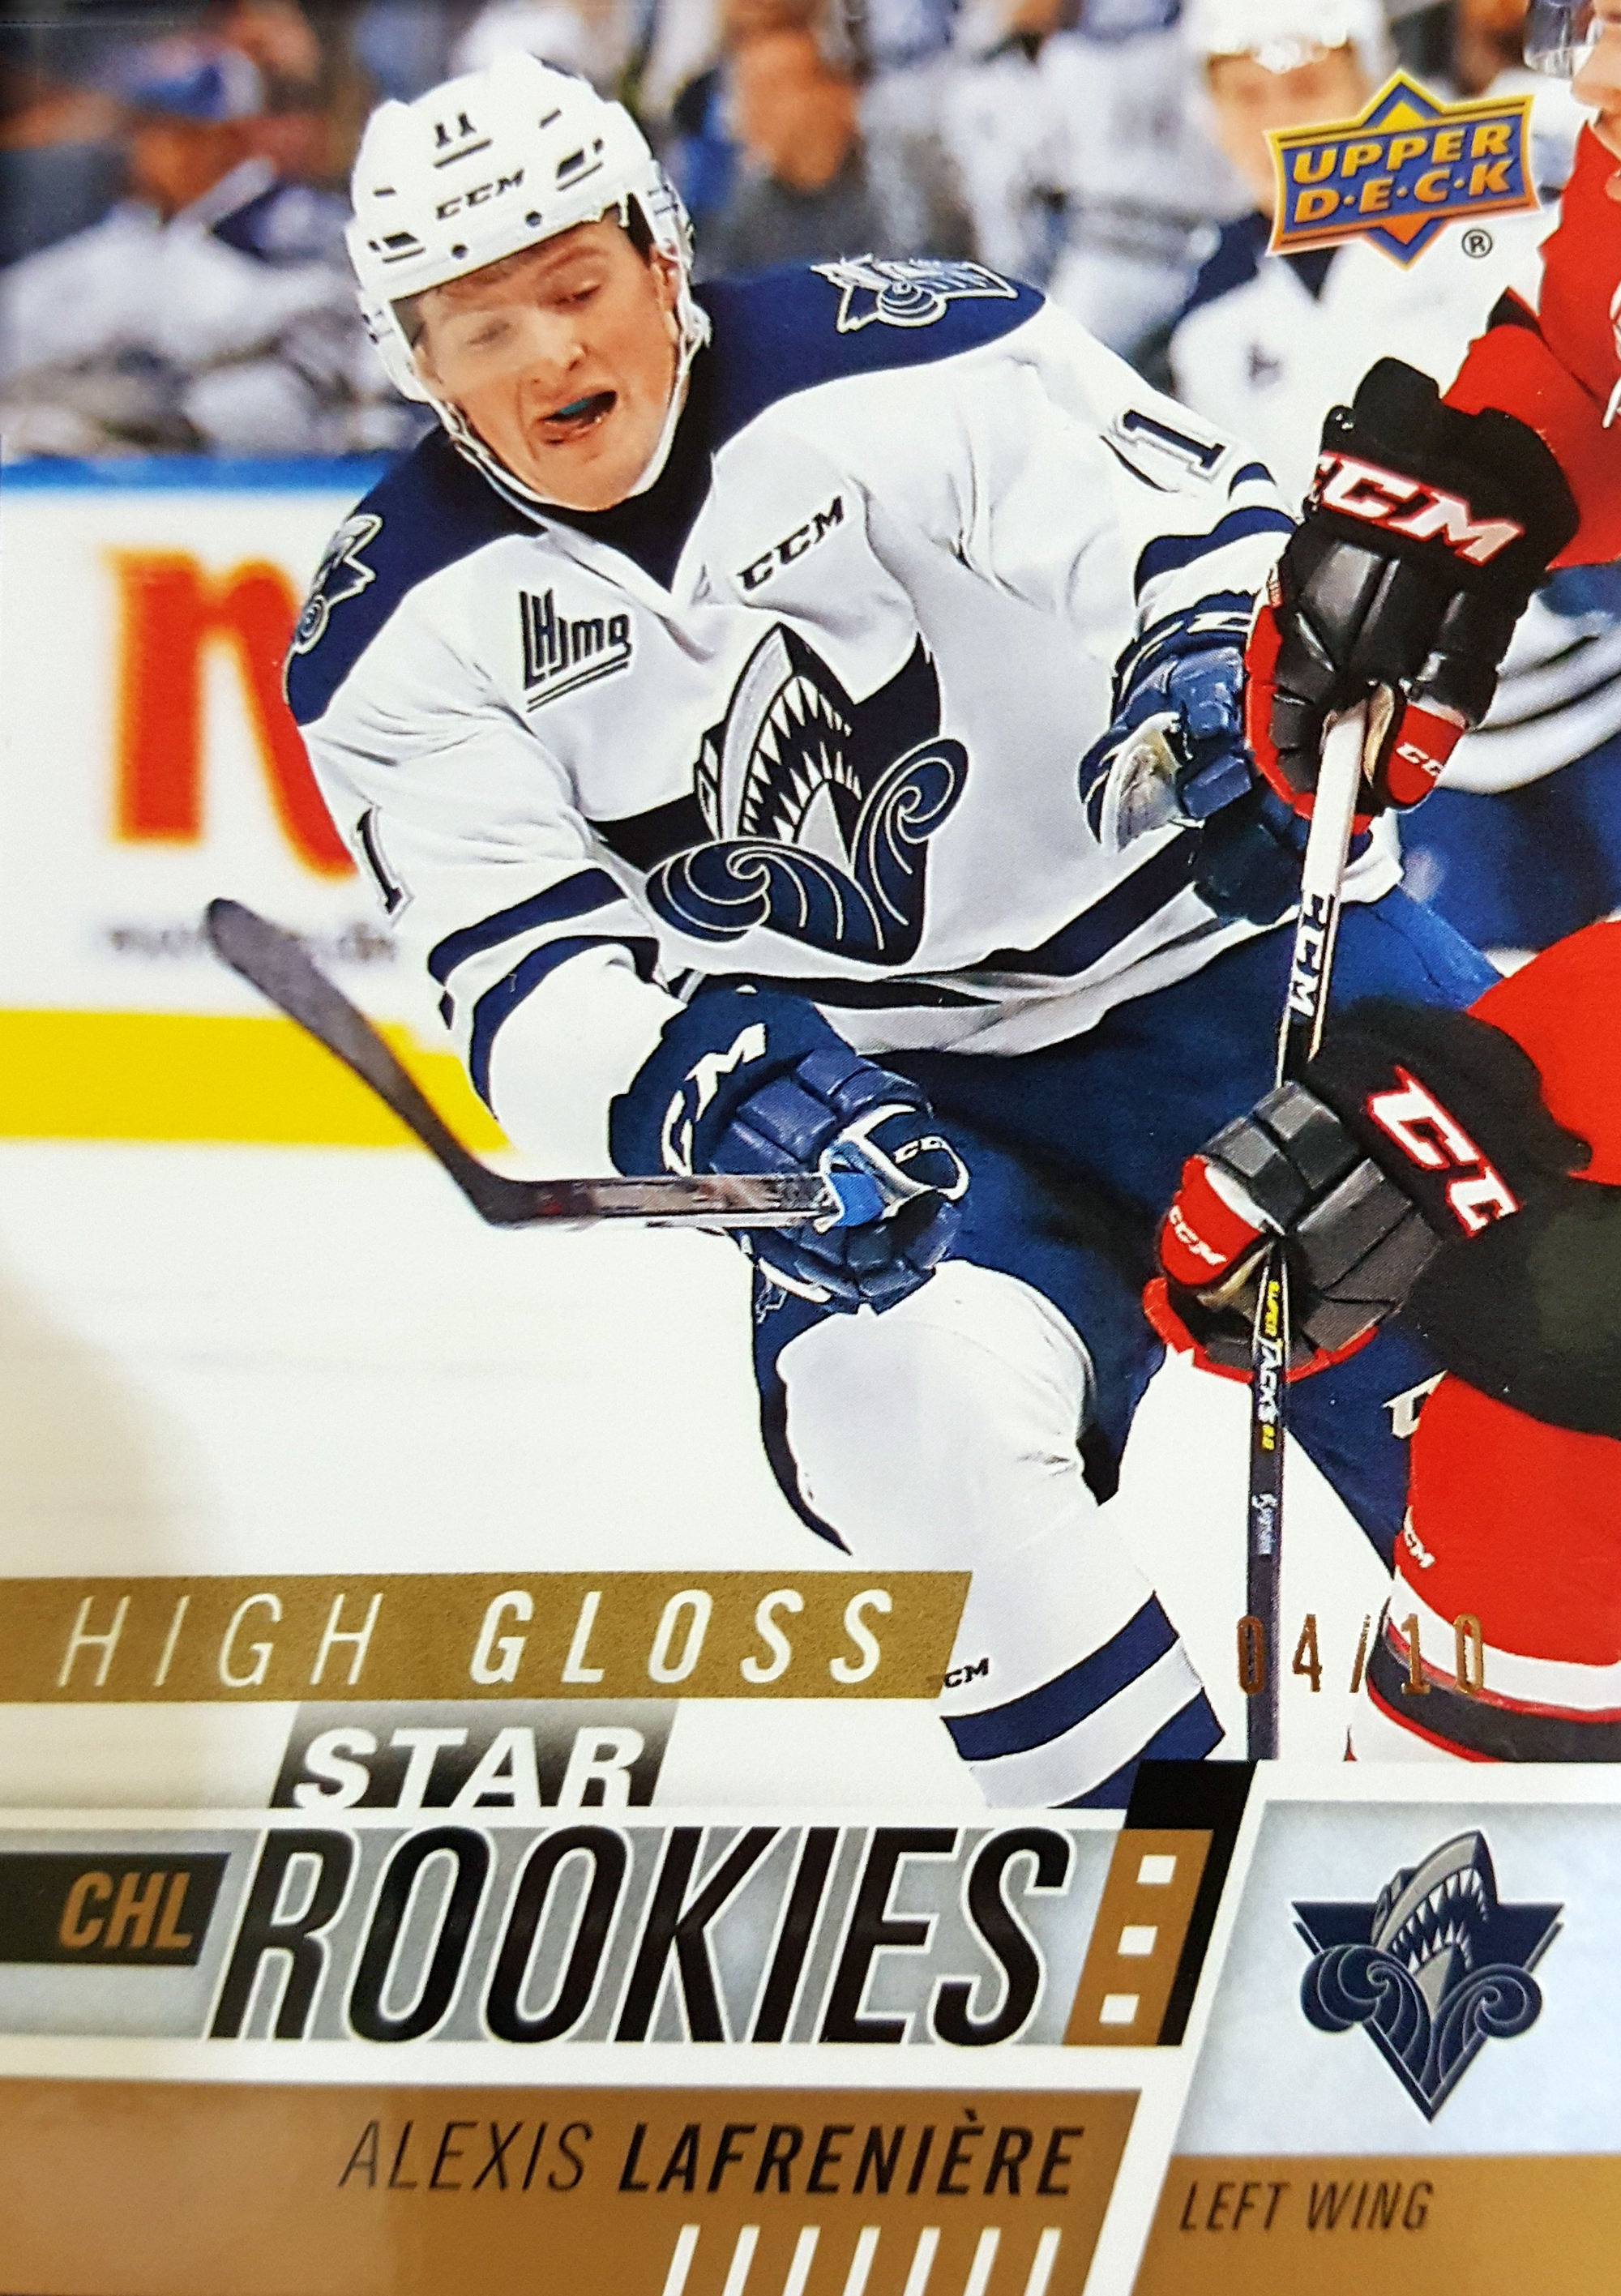 2017-18-upper-deck-chl-star-rookies-high-gloss-alexis-lafreniere